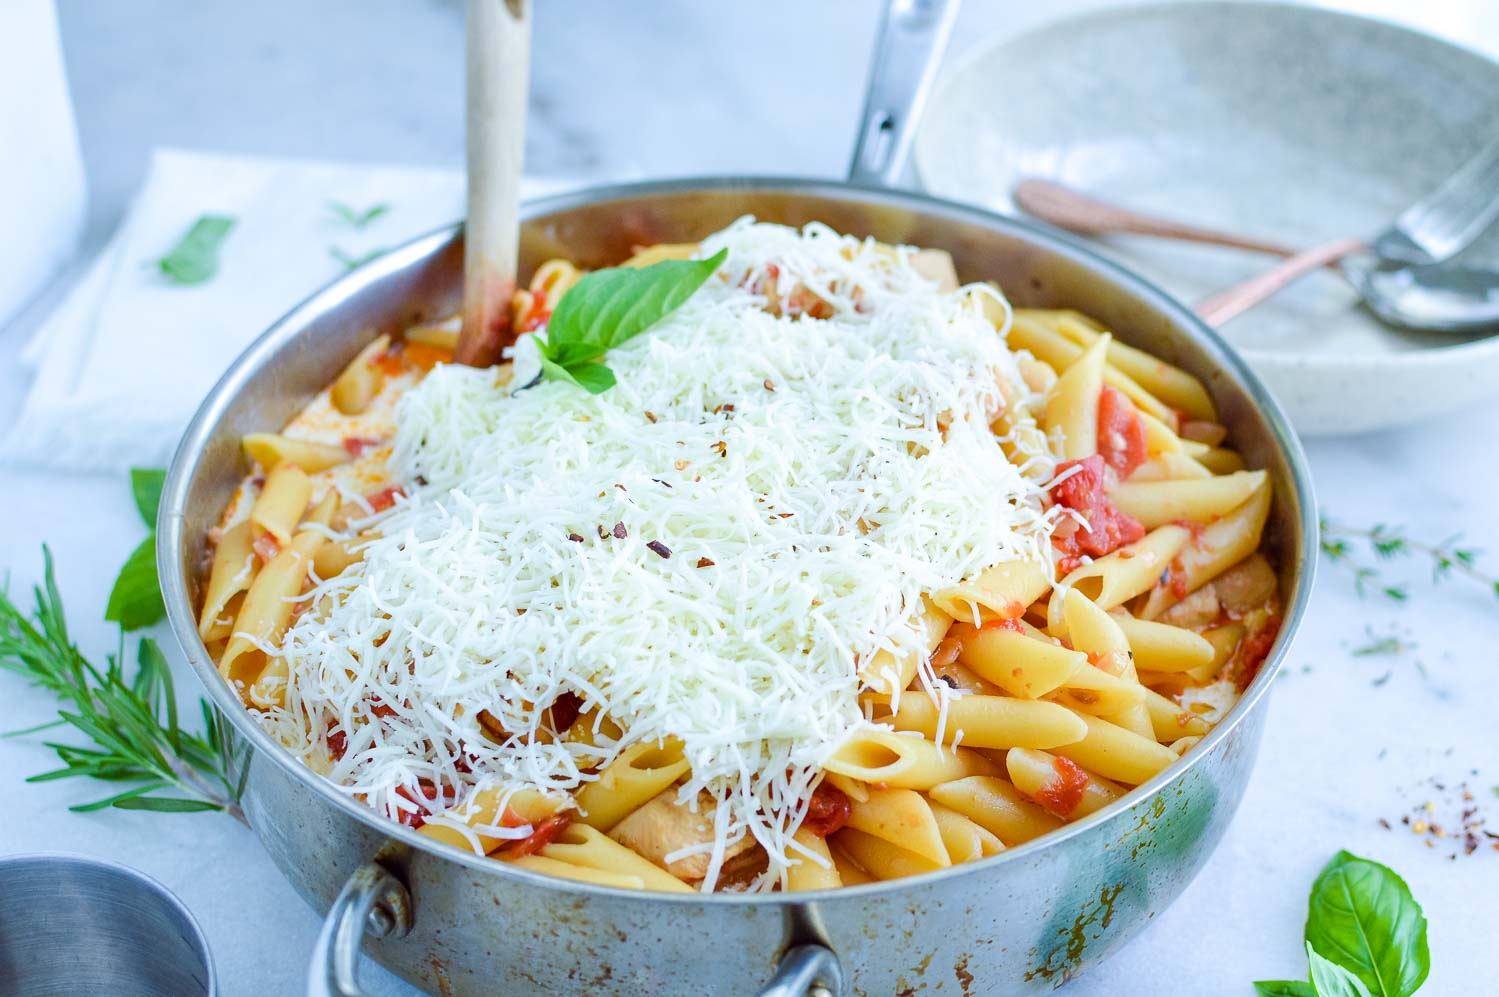 A silver pan full of pasta, shredded cheese, tomatoes and spices with a wooden spoon in it with fresh basil around the bowls.